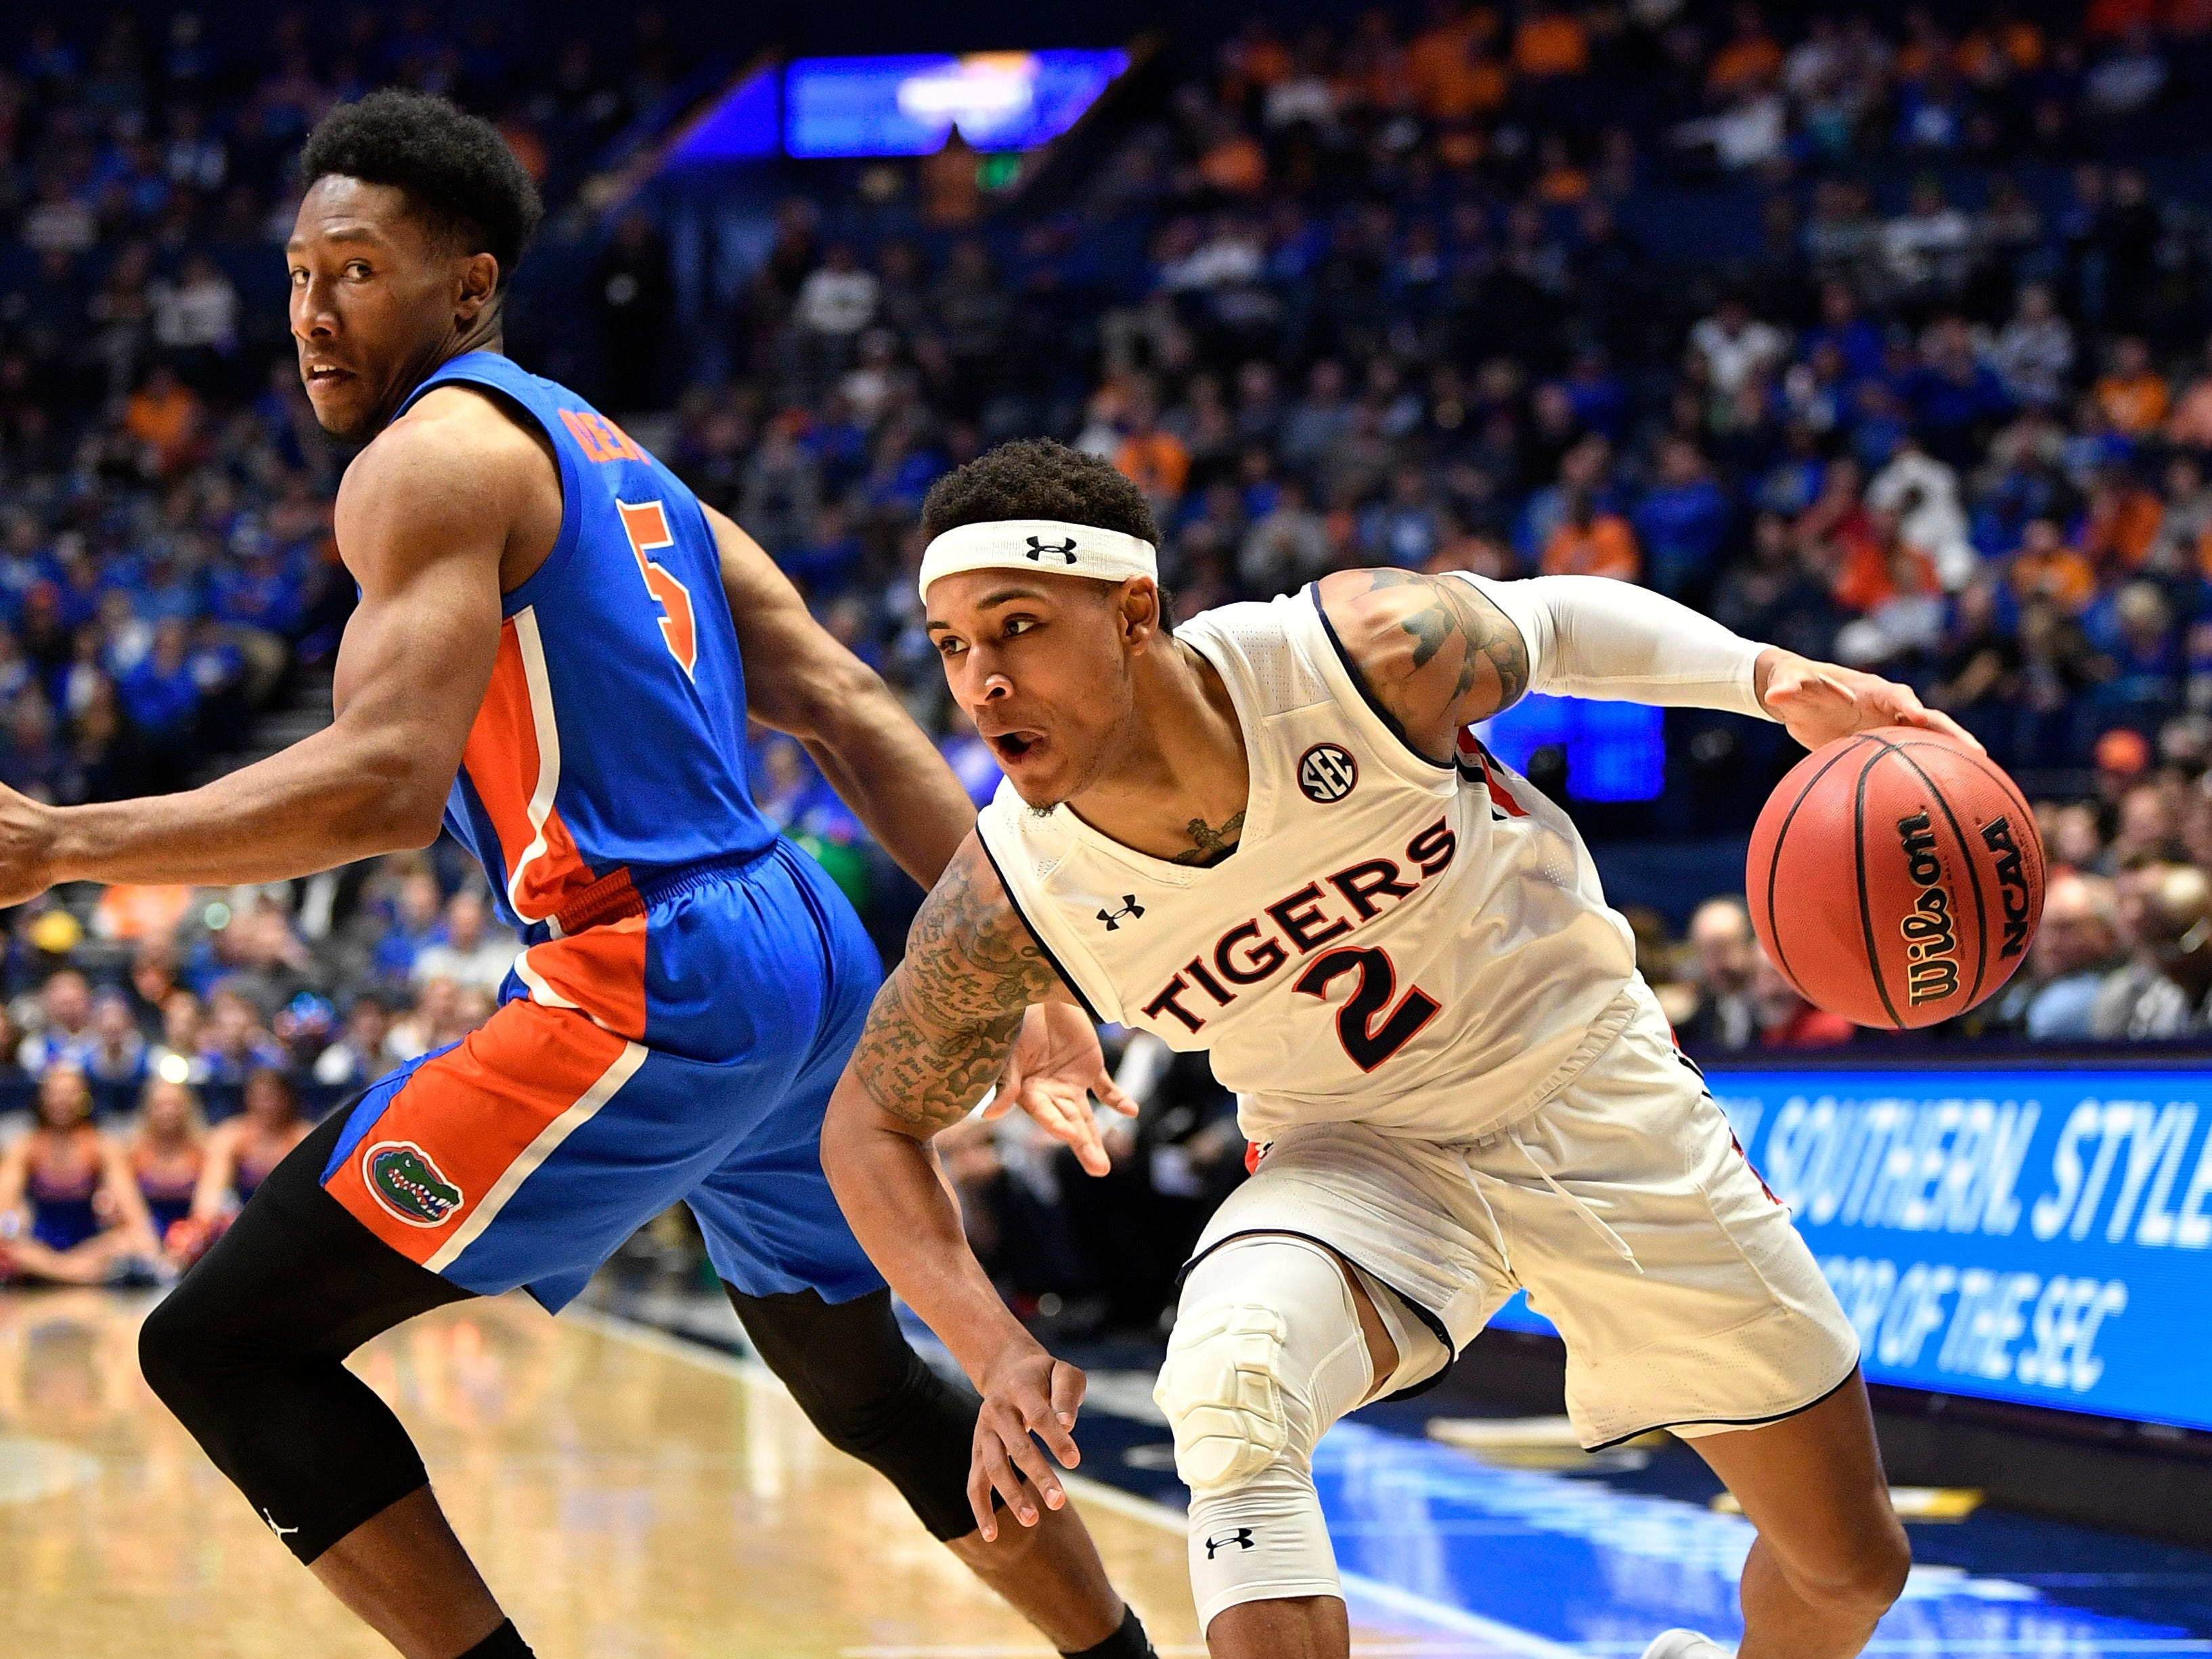 Auburn guard Bryce Brown (2) moves the ball defended by Florida guard KeVaughn Allen (5) during the second half of the SEC Men's Basketball Tournament game at Bridgestone Arena in Nashville, Tenn., Saturday, March 16, 2019.